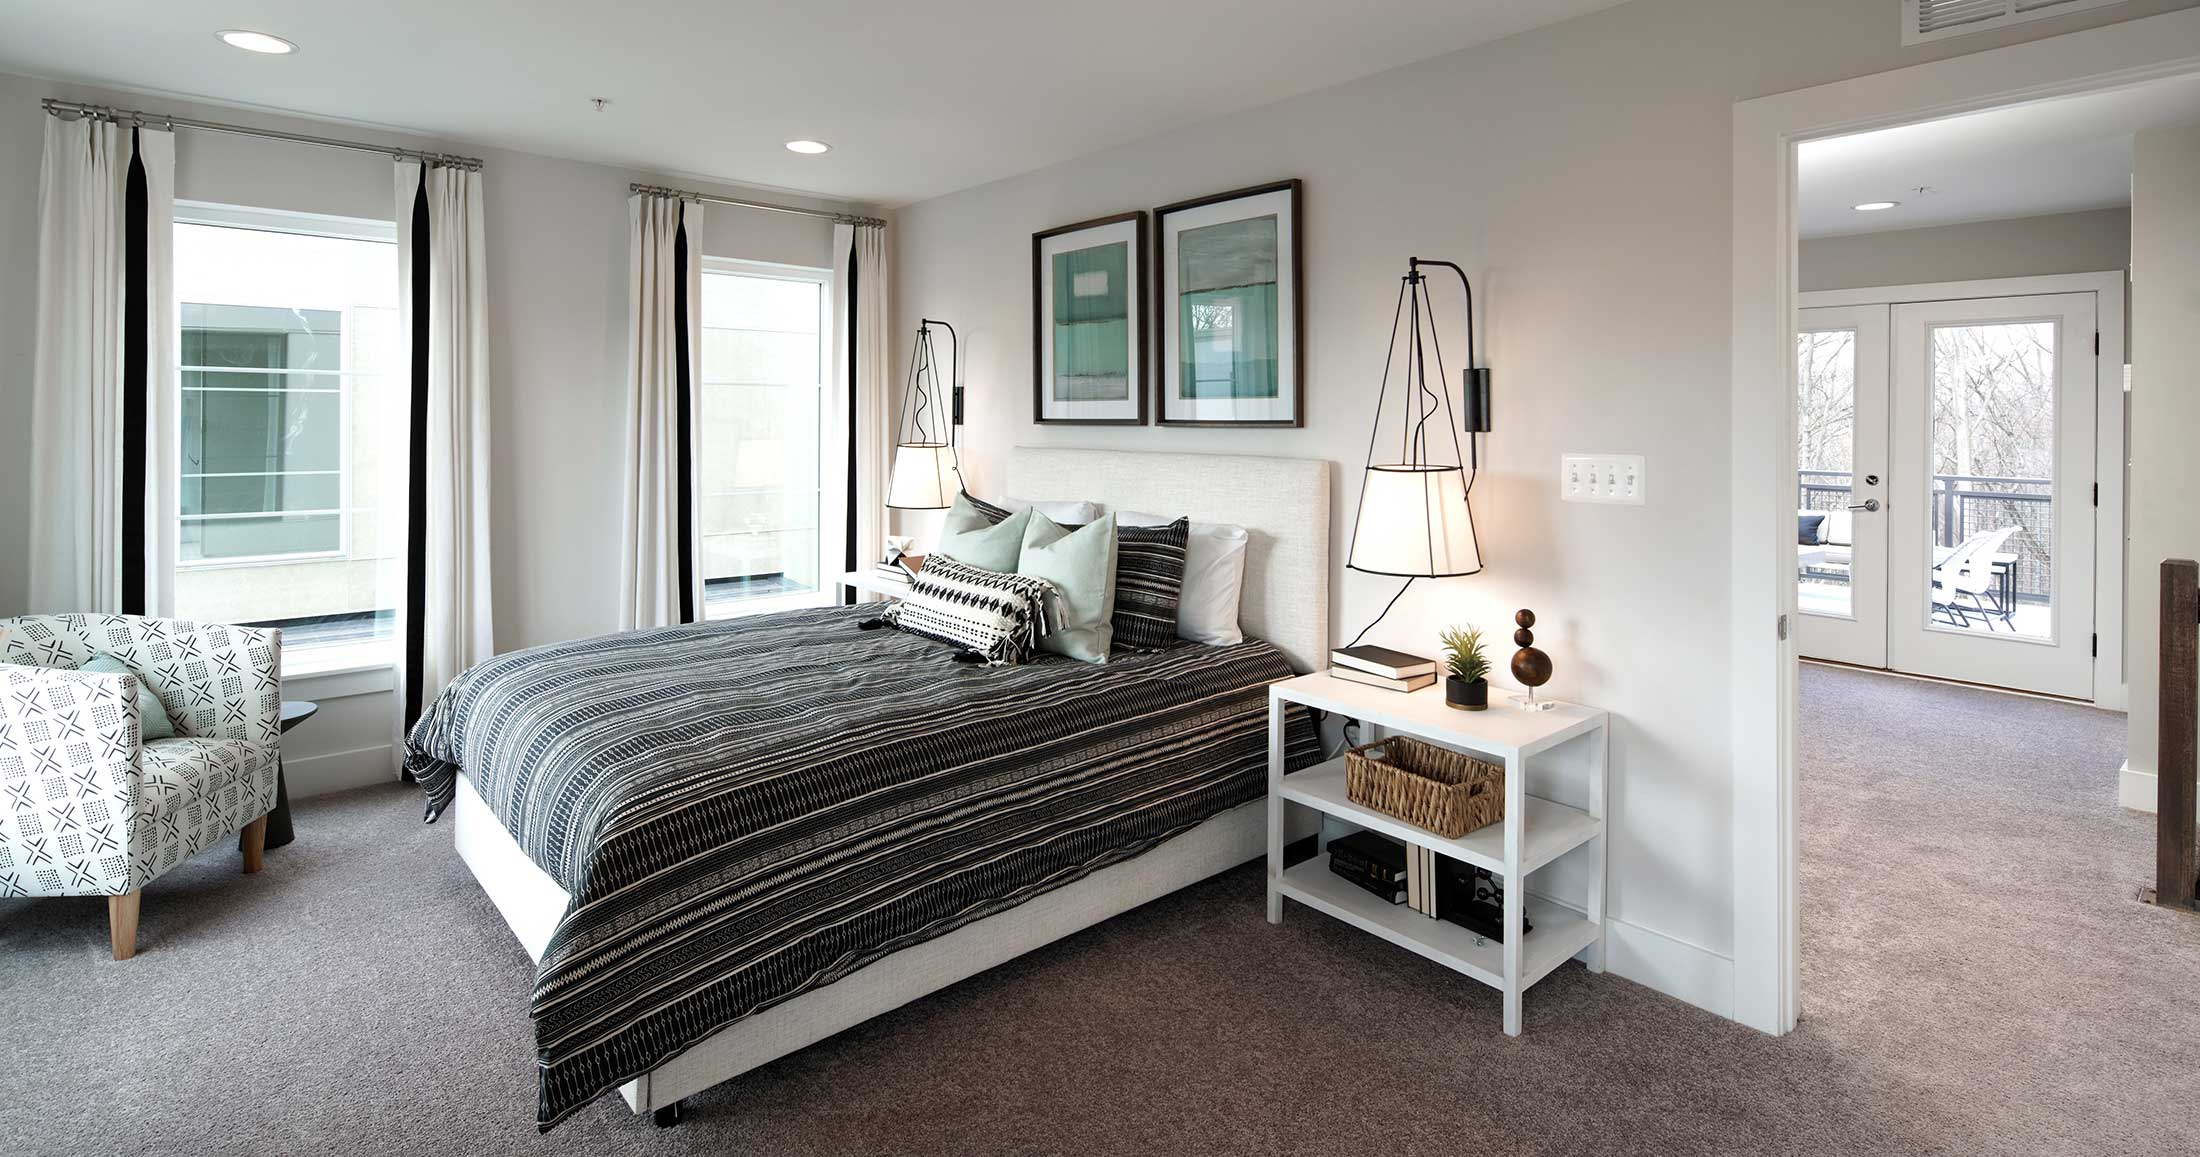 Bedroom, Townhomes in Chantilly VA